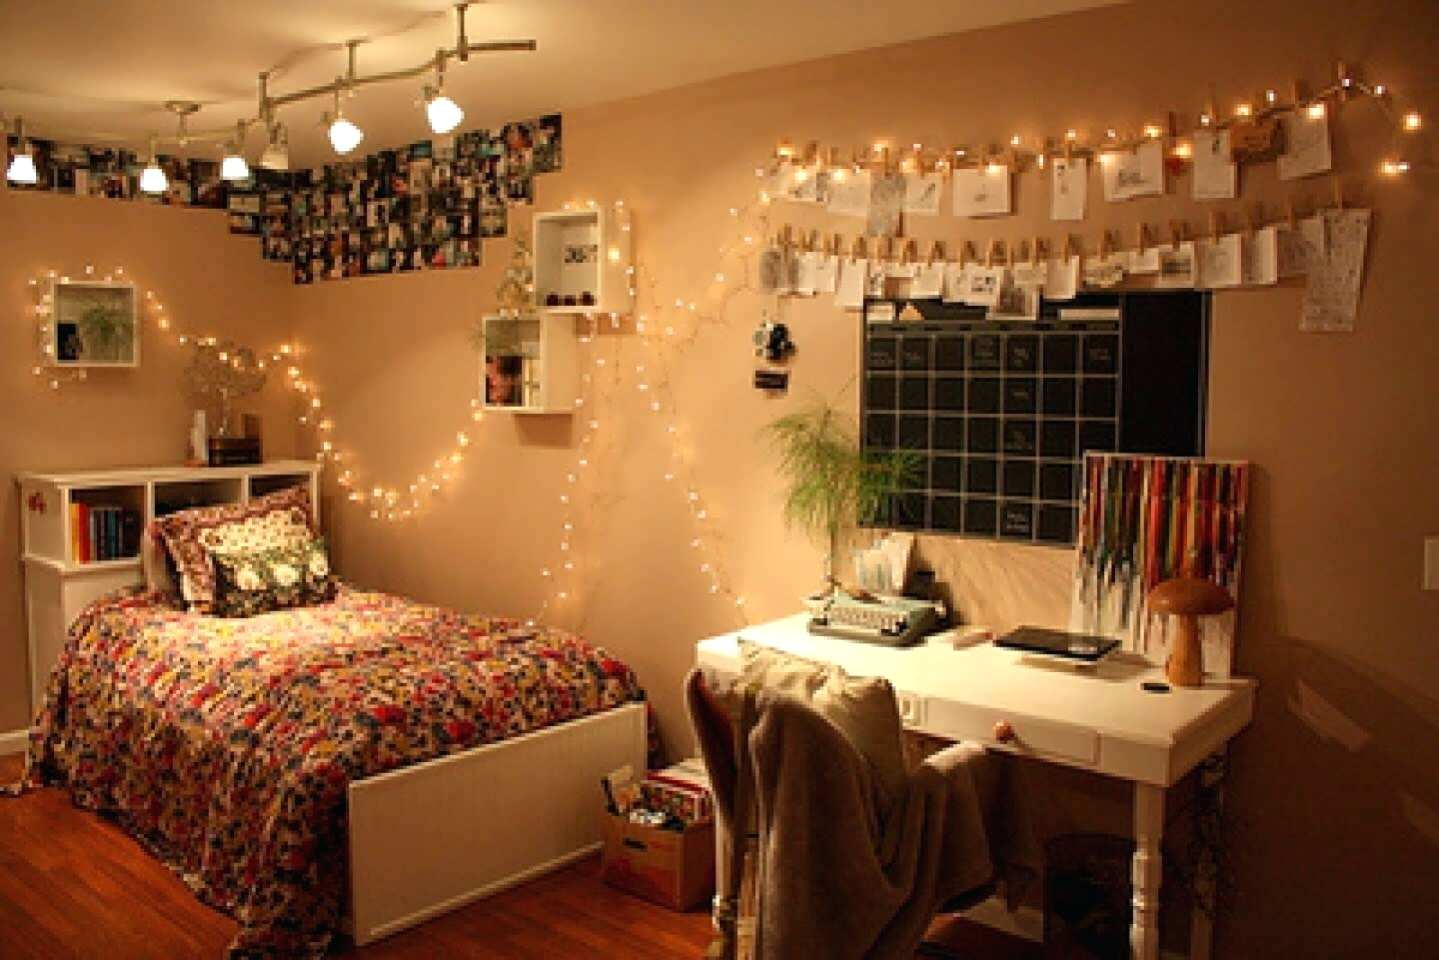 cute ideas for your room 7 cute ways to decorate your bedroom cute